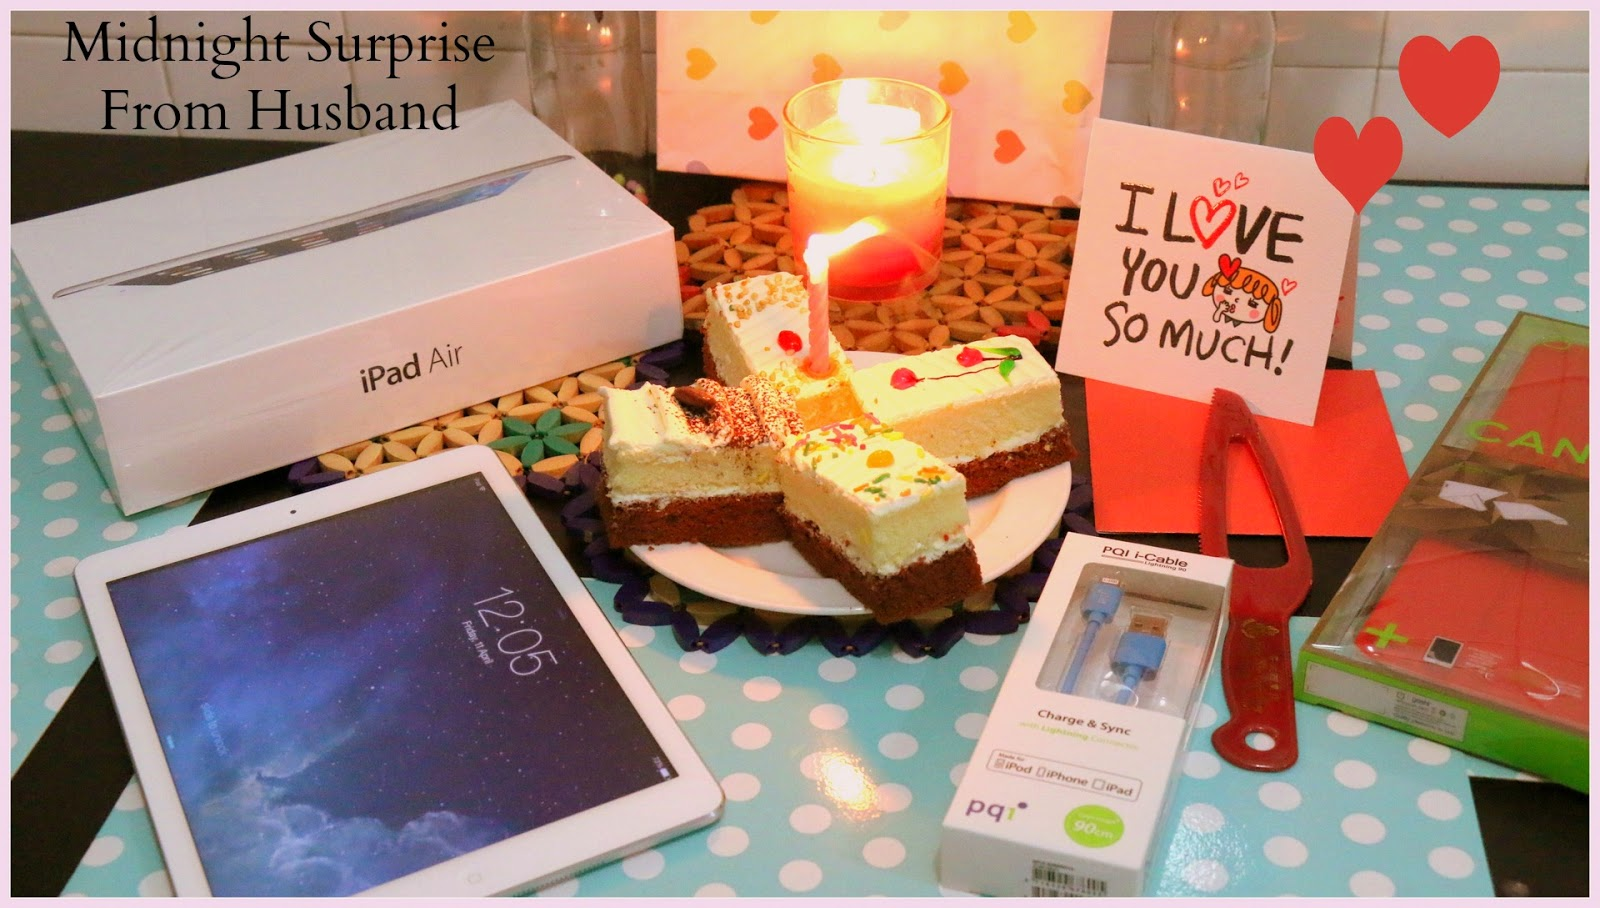 Wedding Annivesary Gift From Husband How To Plan A Anniversary Surprise Life Update